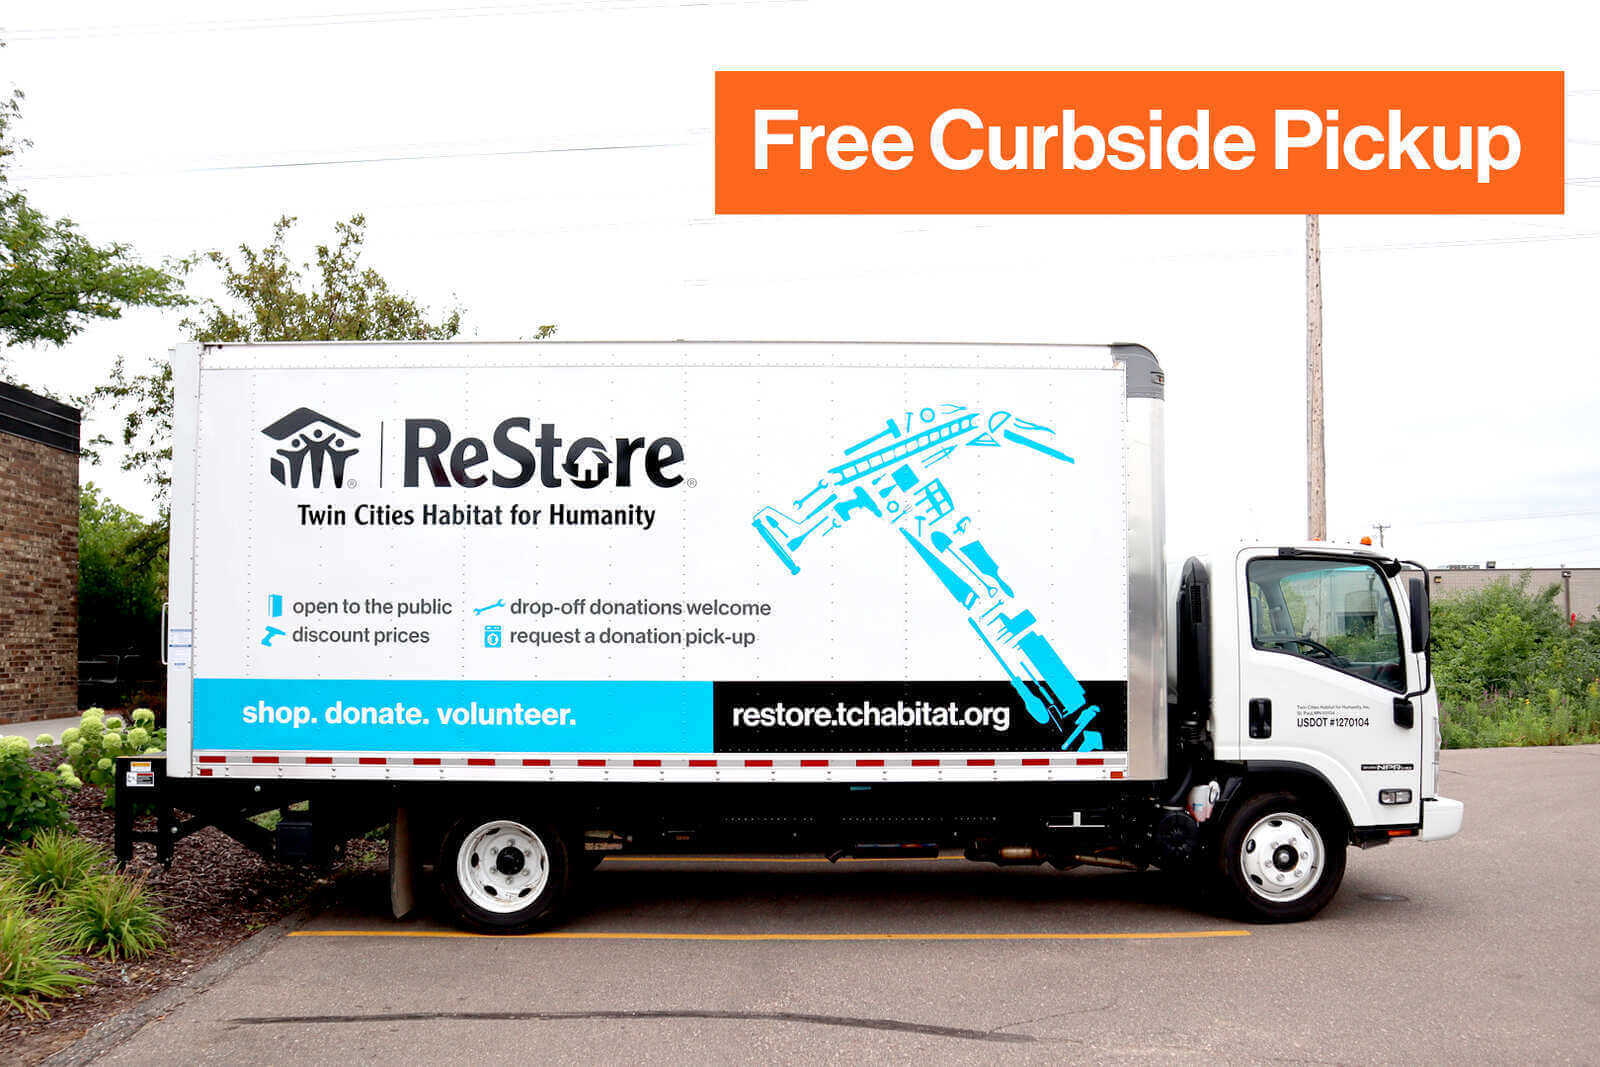 "Outside on a parking lot sits a white truck that has the ReStore logo, a large light blue hammer made up of many tools, a blue bar at the bottom that says ""shop. donate. volunteer."", a black bar to the right of it that says ""restore.tchabitat.org"". Above the bar on the truck is a series of short phrases next to light blue icons, saying ""open to the public"", ""discount prices"", ""drop-off donations welcome"", and ""request a donation pick-up"". Overlaying the image is an orange box saying ""Free Curbside Pickup"""